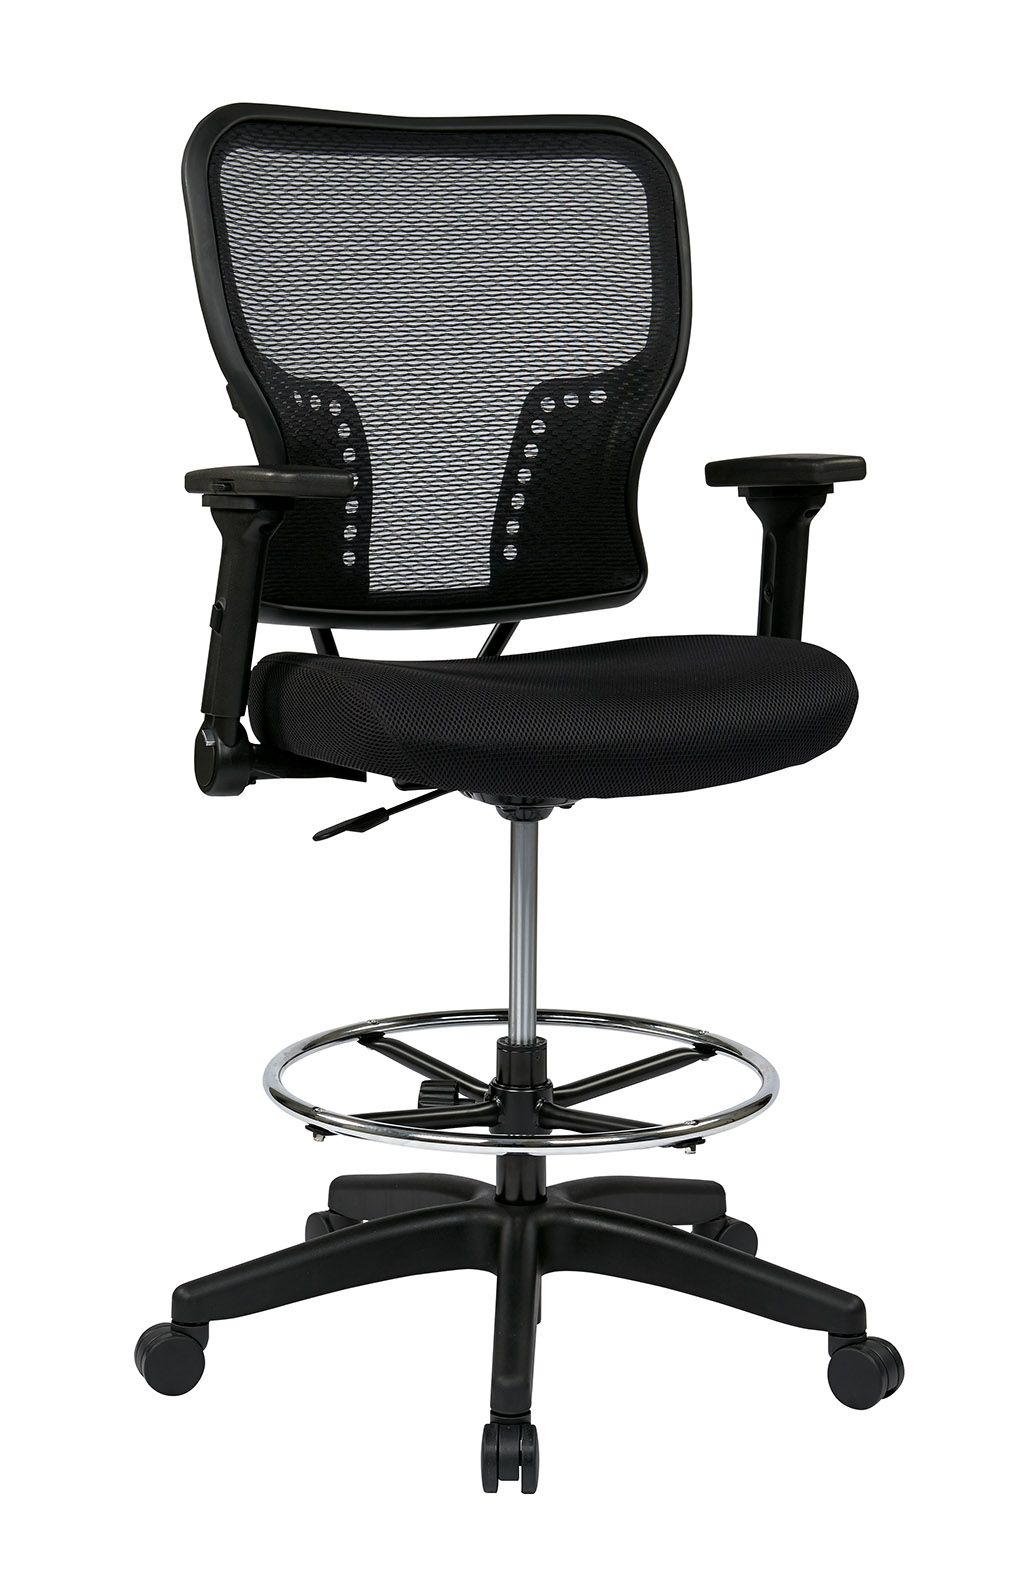 Deluxe air grid back and padded mesh seat chair with 4